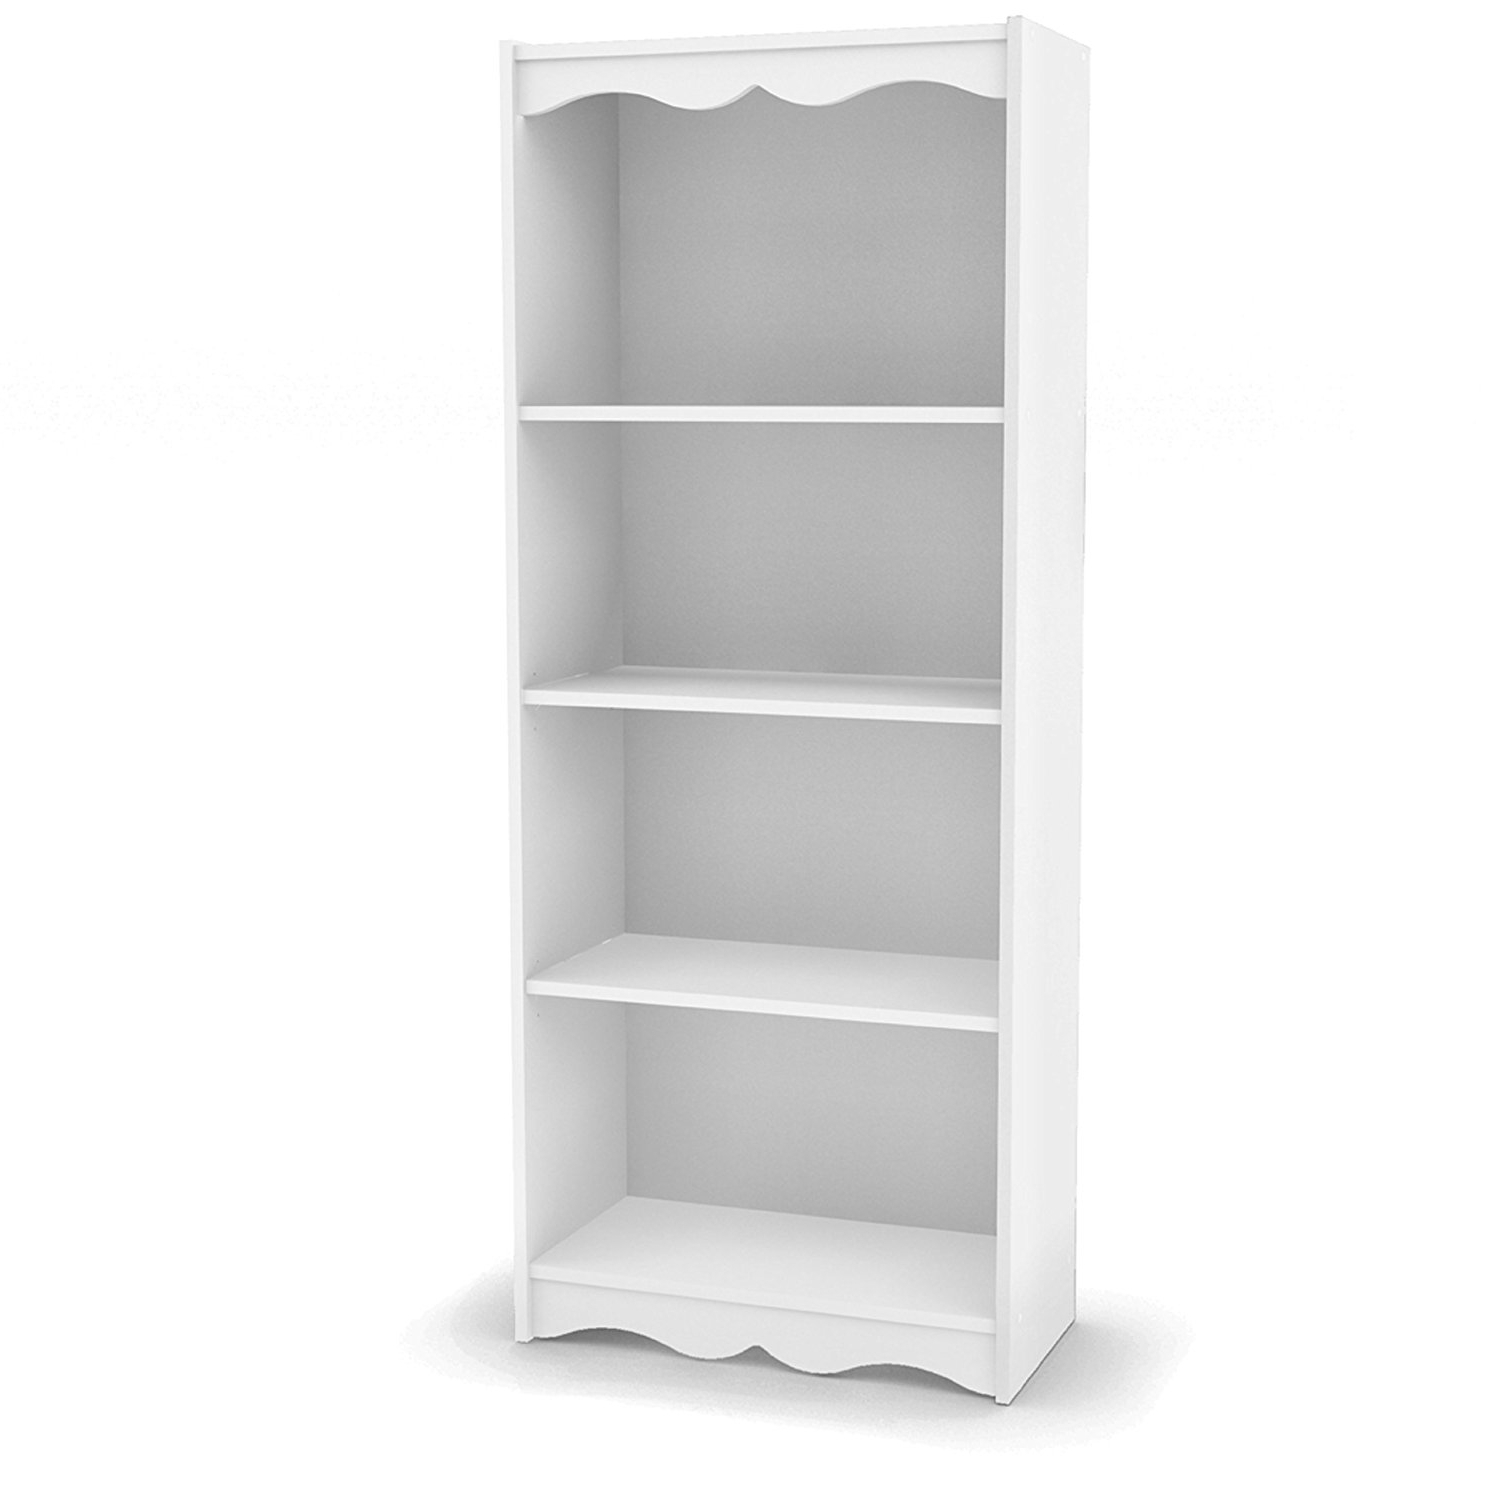 Most Popular 24 Inch Wide Bookcases Intended For Amazon: Sonax Hawthorn 60 Inch Tall Bookcase, Frost White (View 8 of 15)